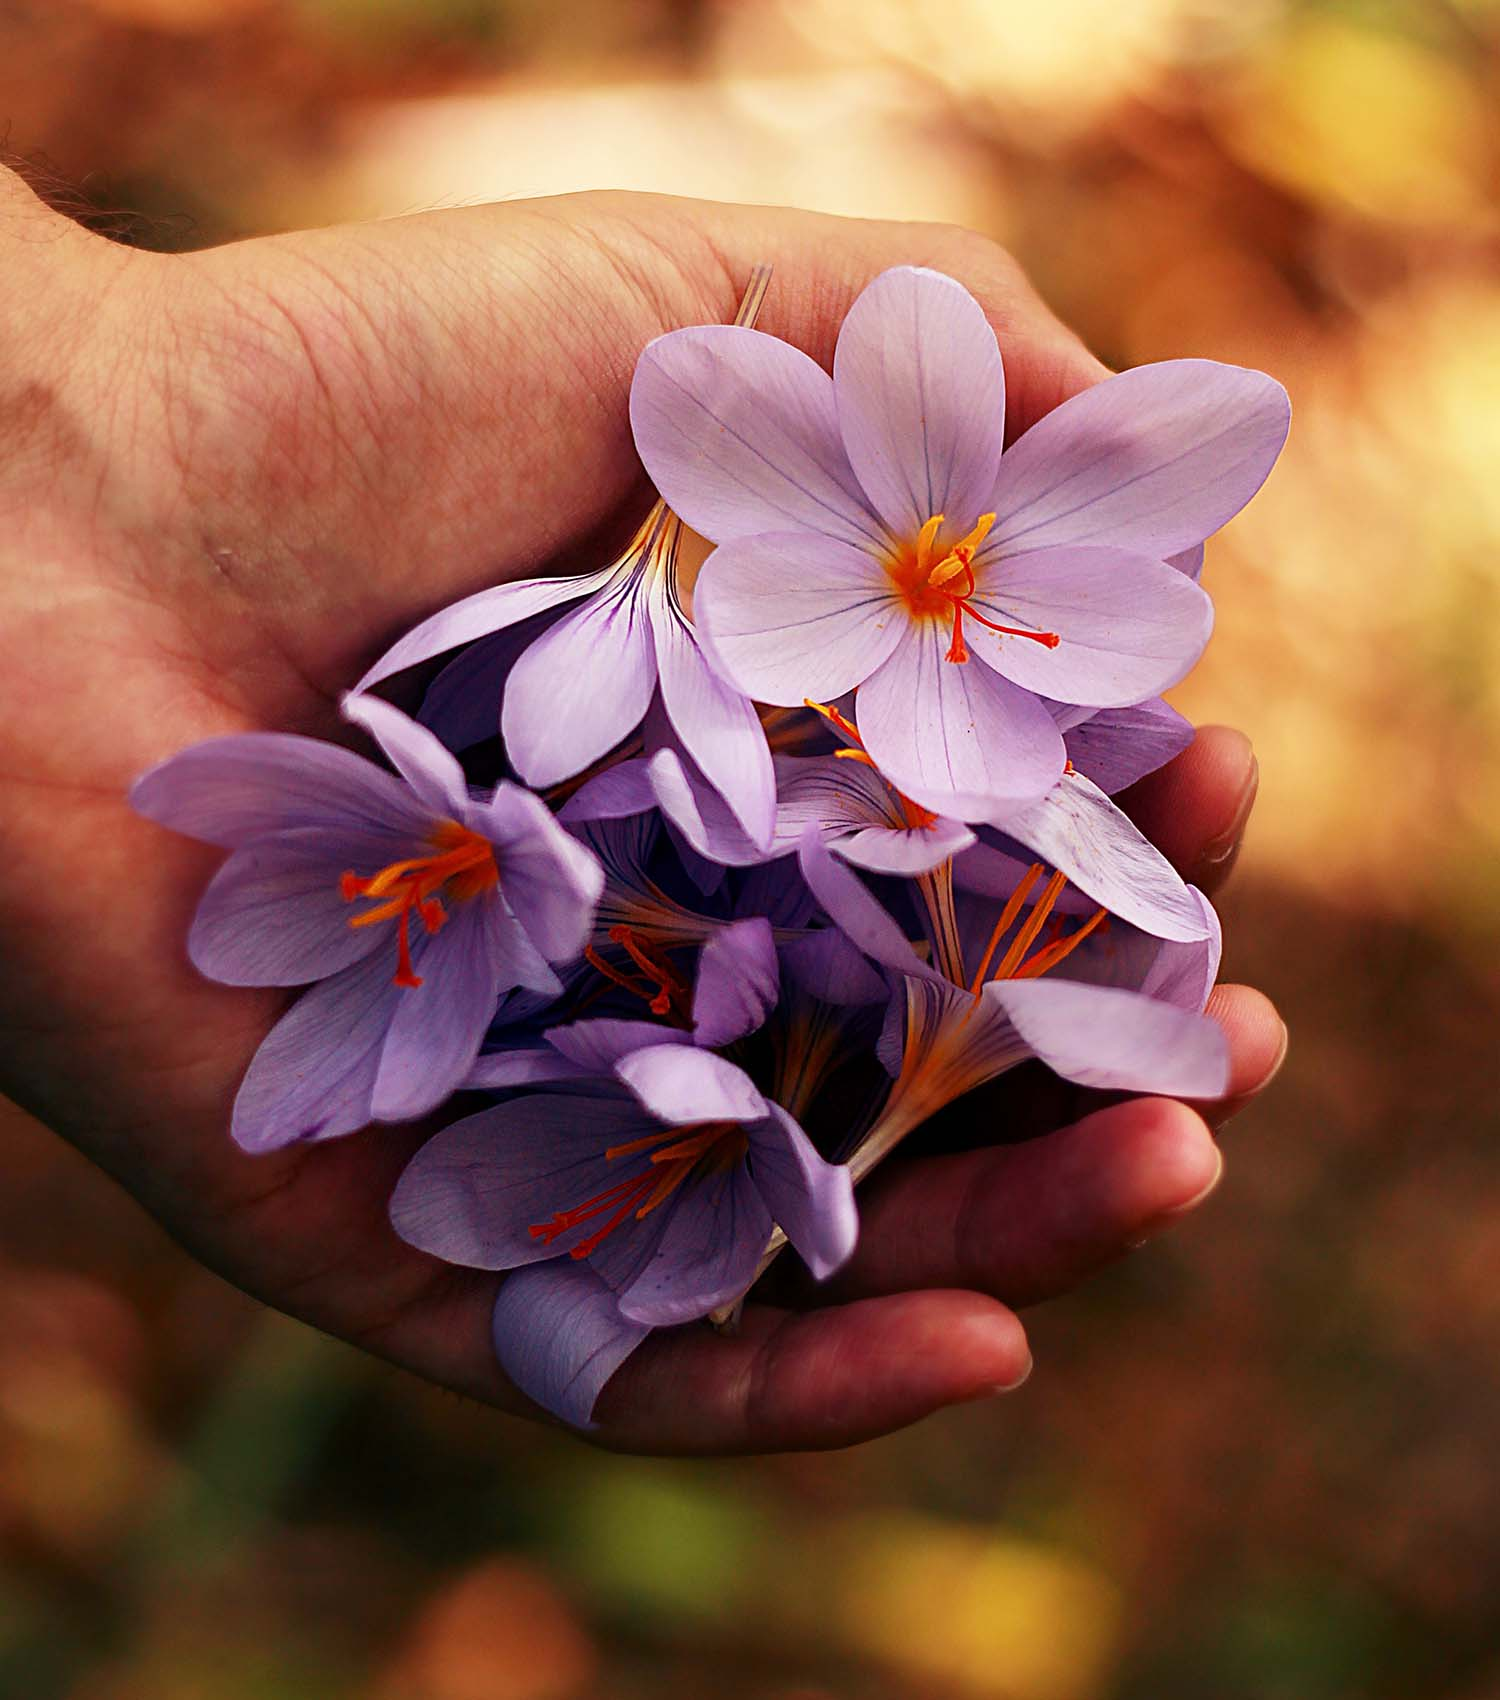 Delicate purple crocus flowers in hand from late winter as spring and hope comes